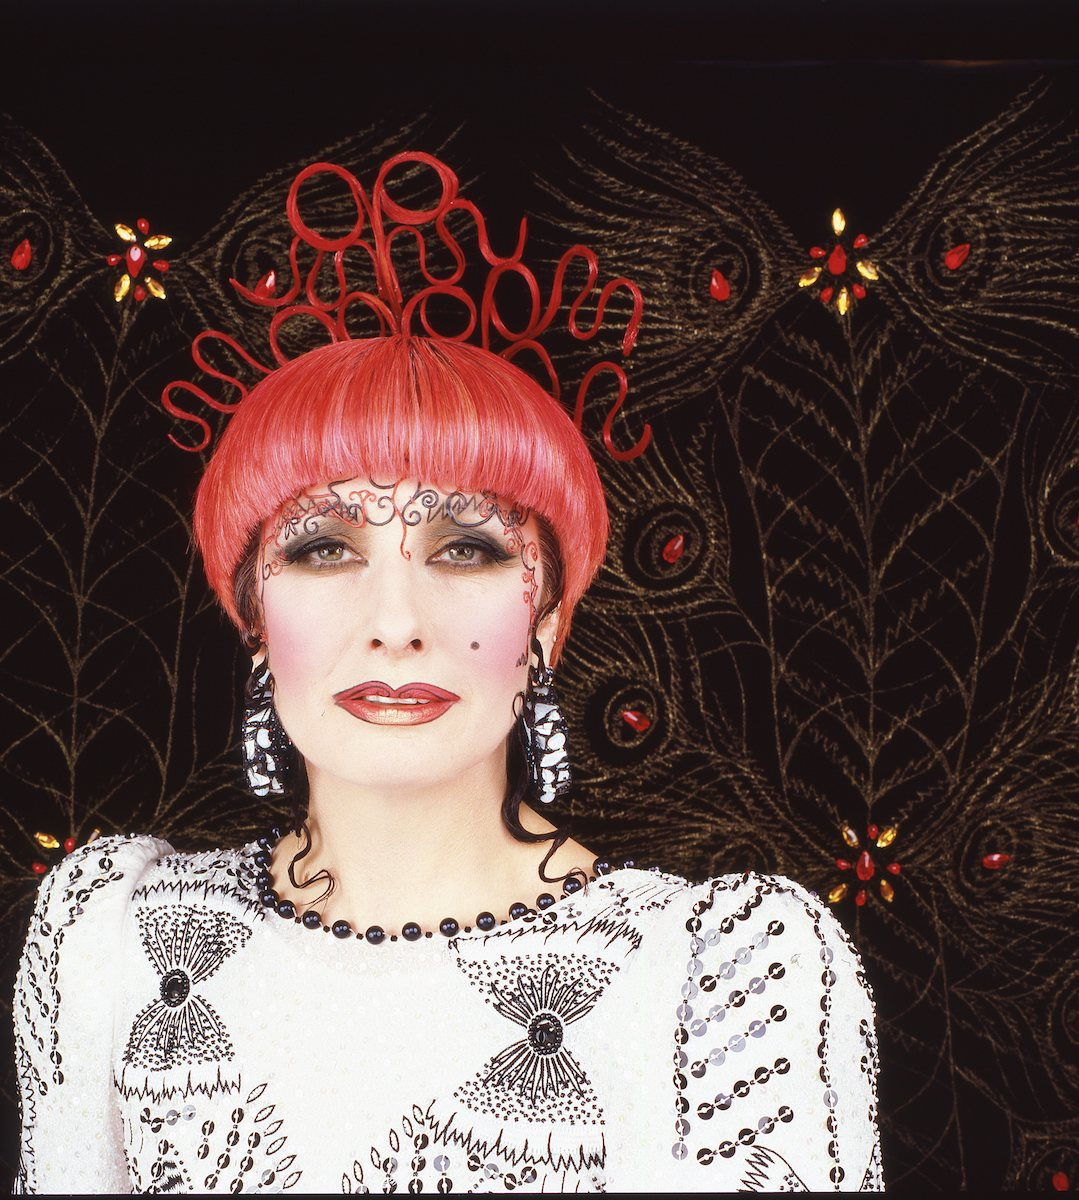 Zandra Rhodes photo for the poster for the SS 1986 'Spanish Impressions' collection. Photograph by Robyn Beeche